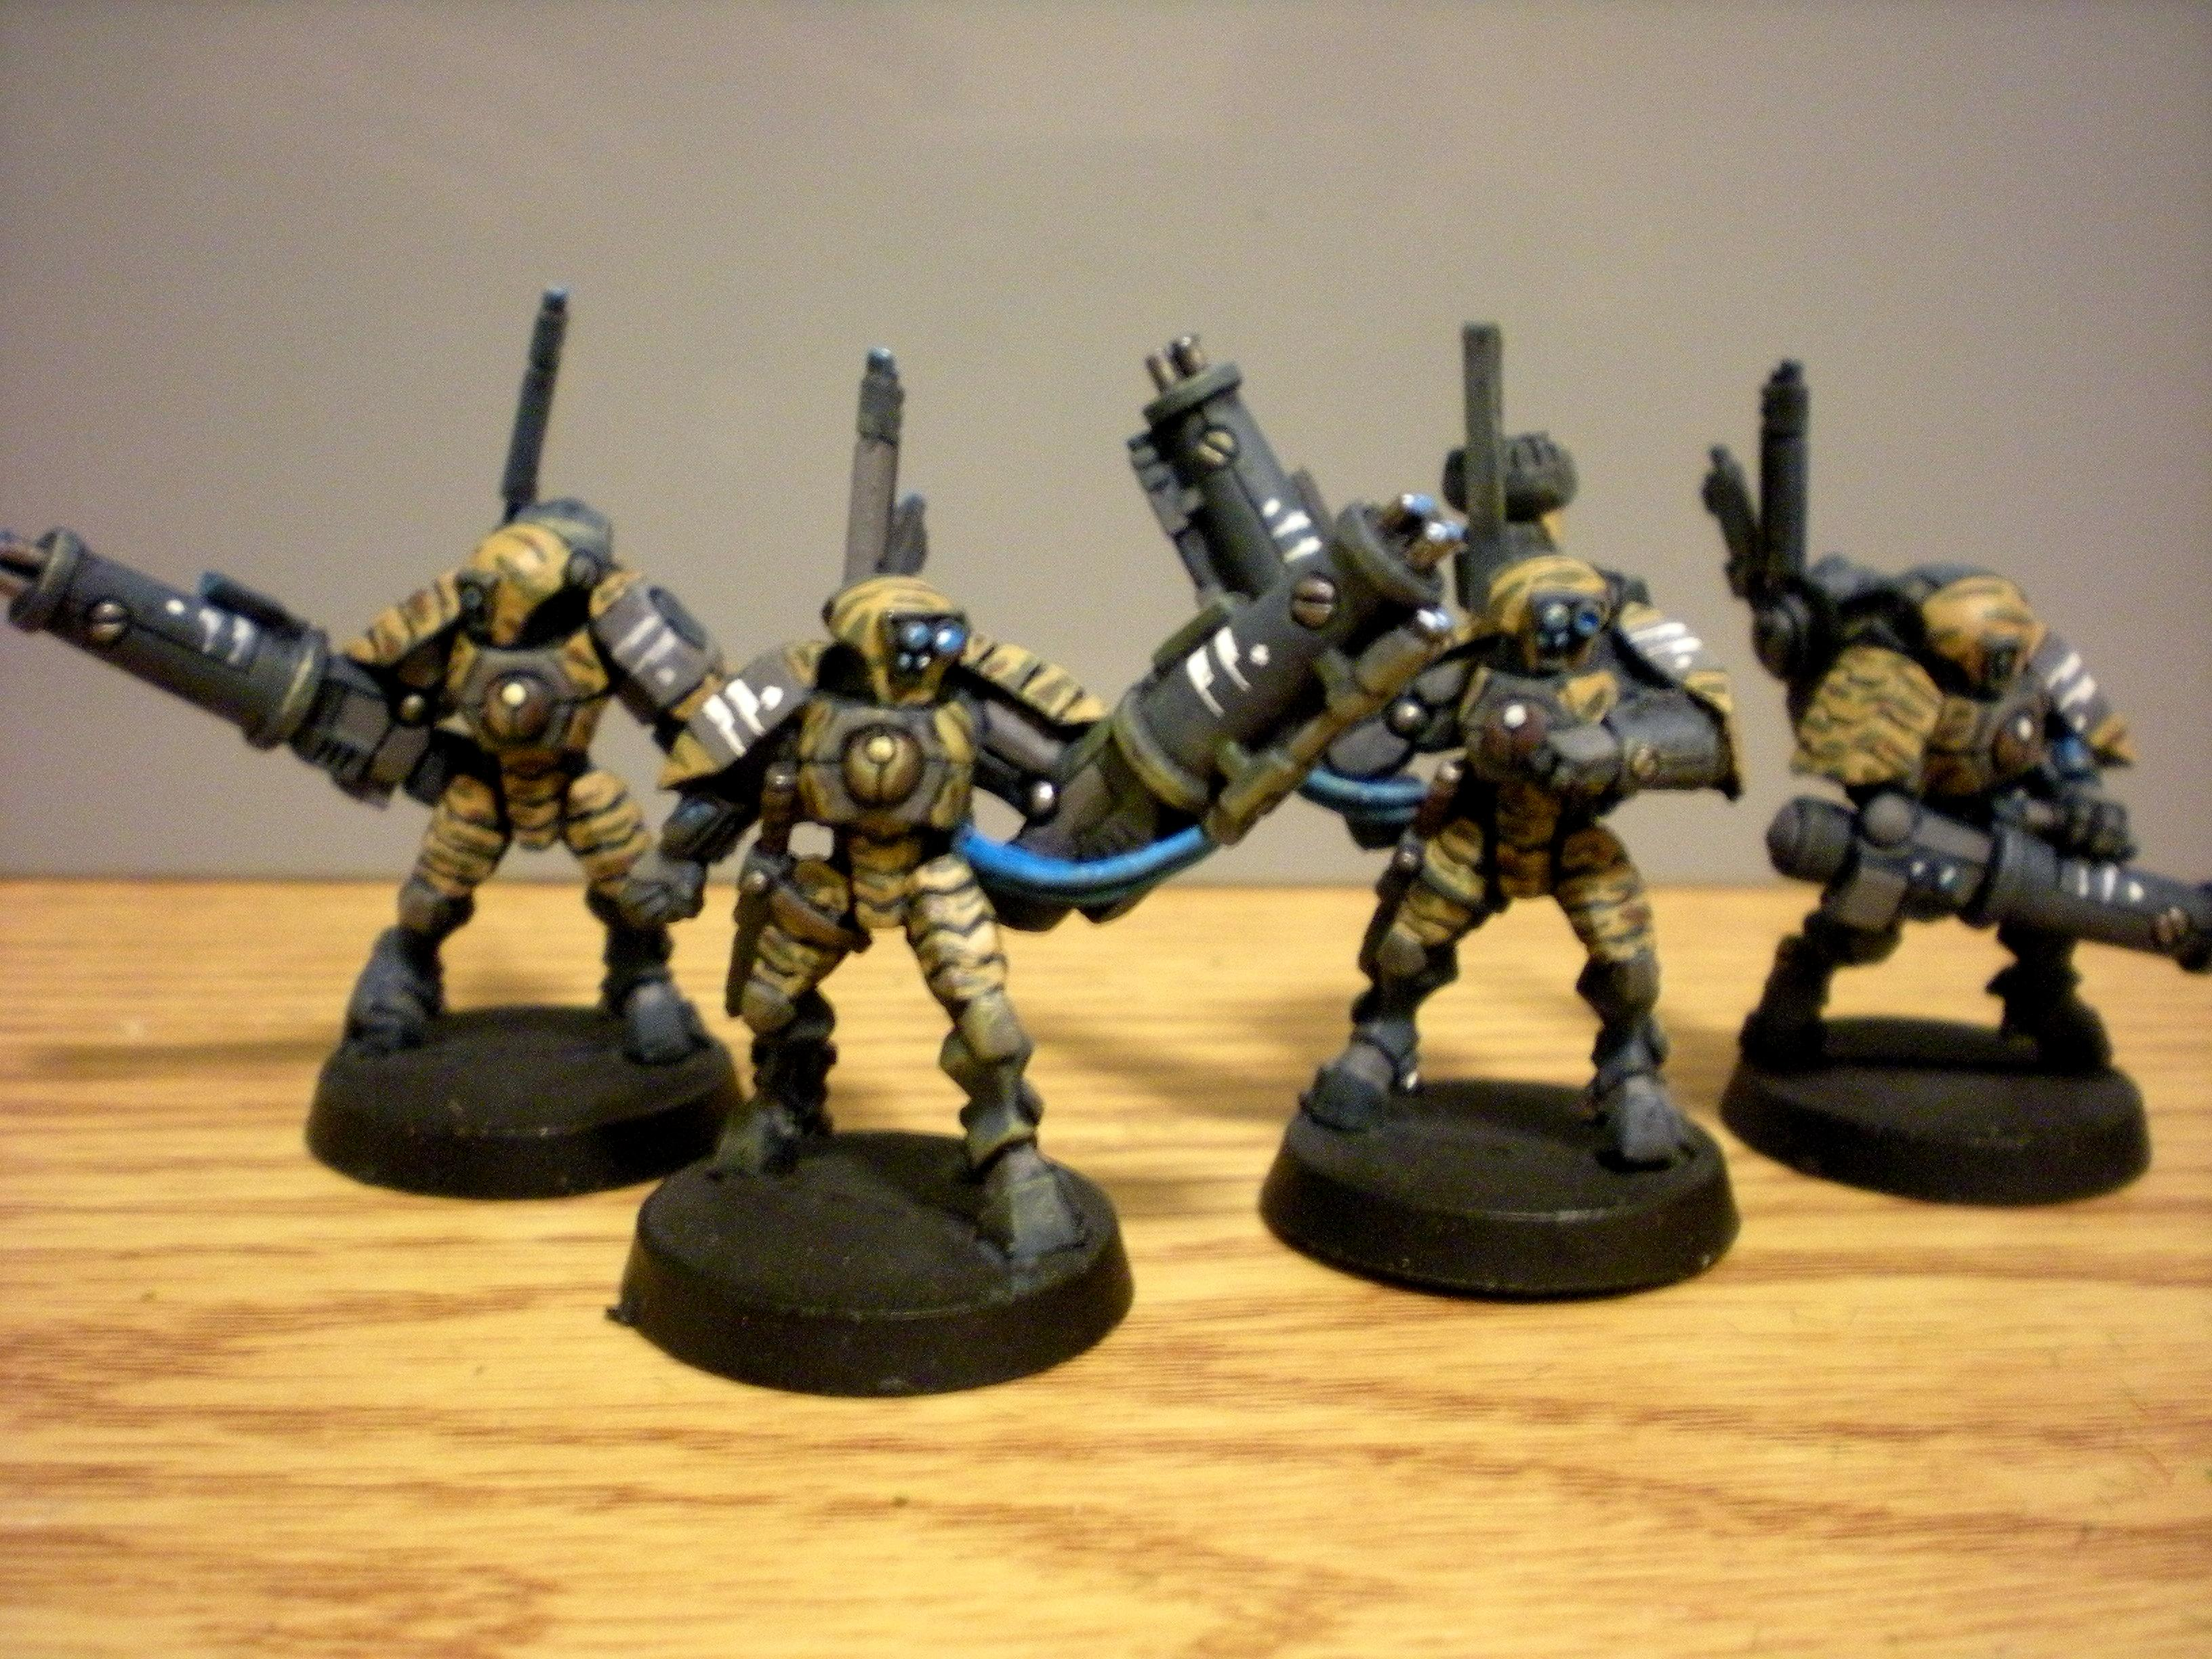 Battlesuit, Conversion, Tau, Tau Camo Stealth Suit, Tau Conversions, Tau Stealth Suit